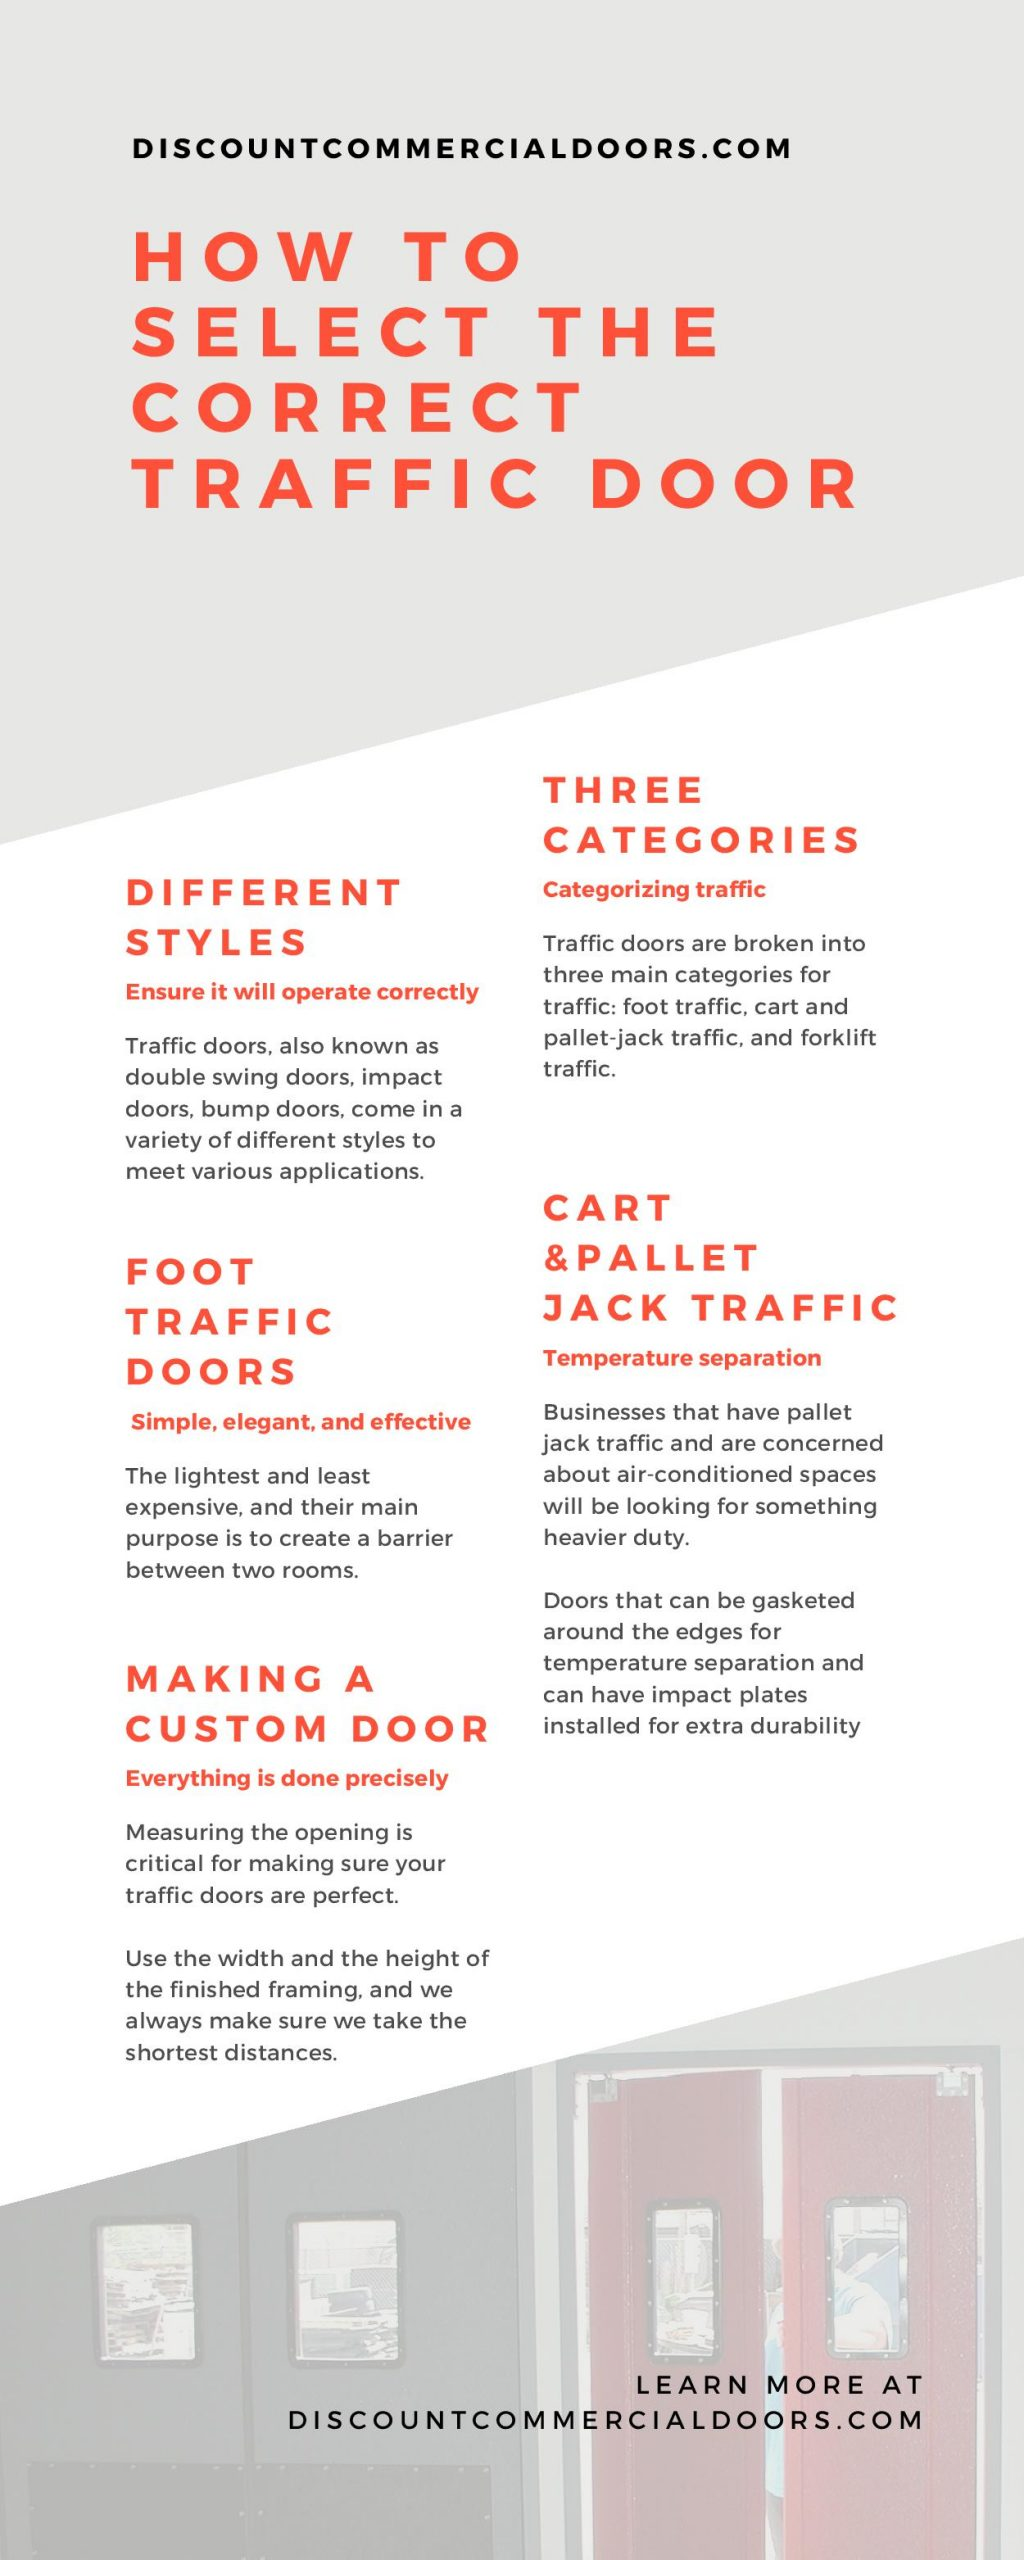 How to Select the Correct Traffic Door